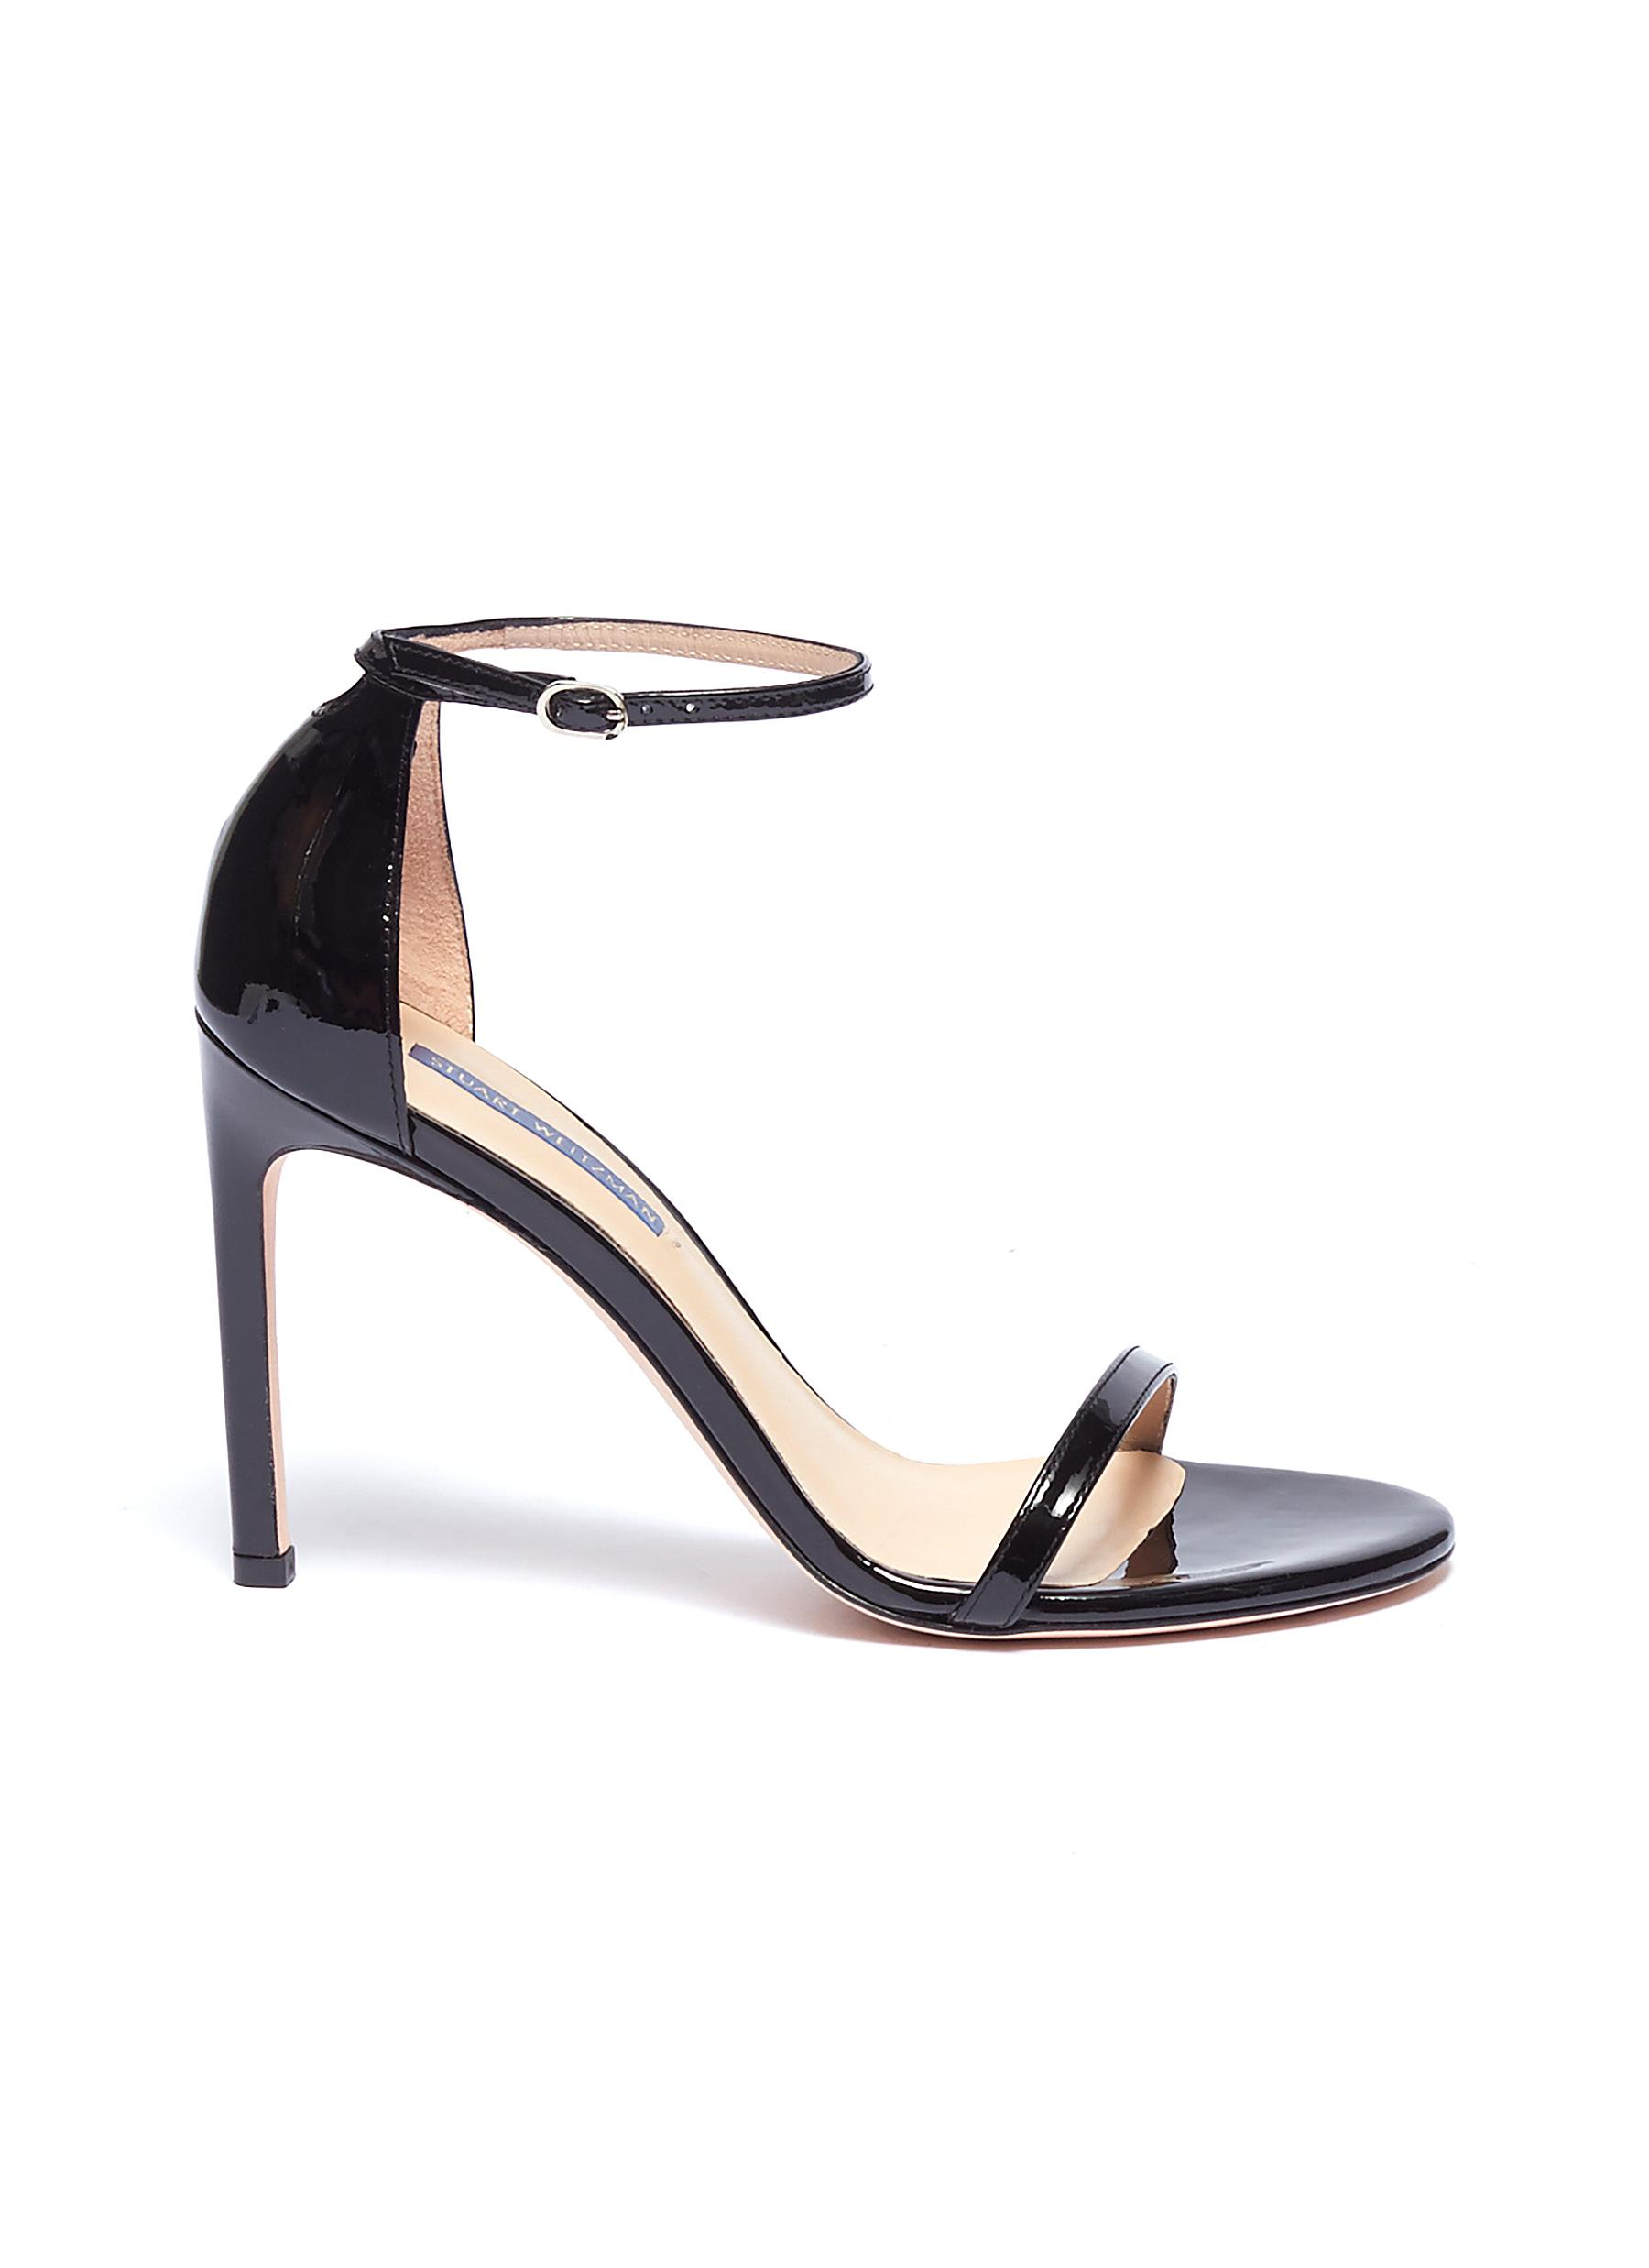 Nudistsong ankle strap patent leather sandals by Stuart Weitzman